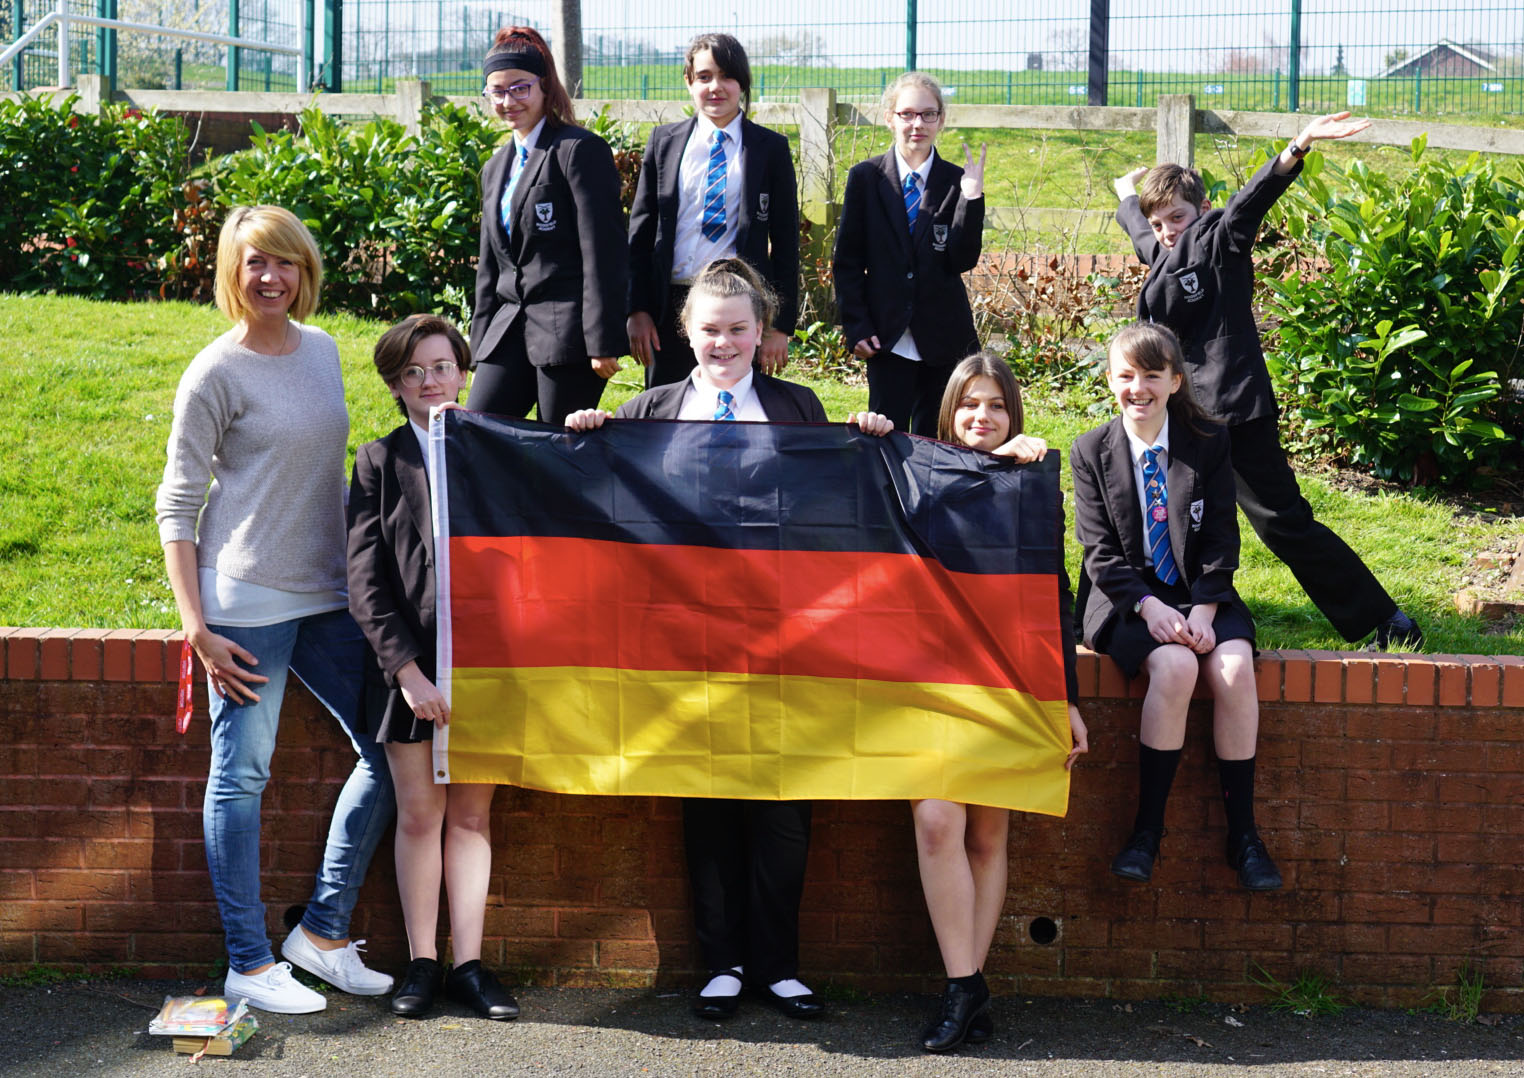 Students and and an adult posing for a photo, the students hold a German flag